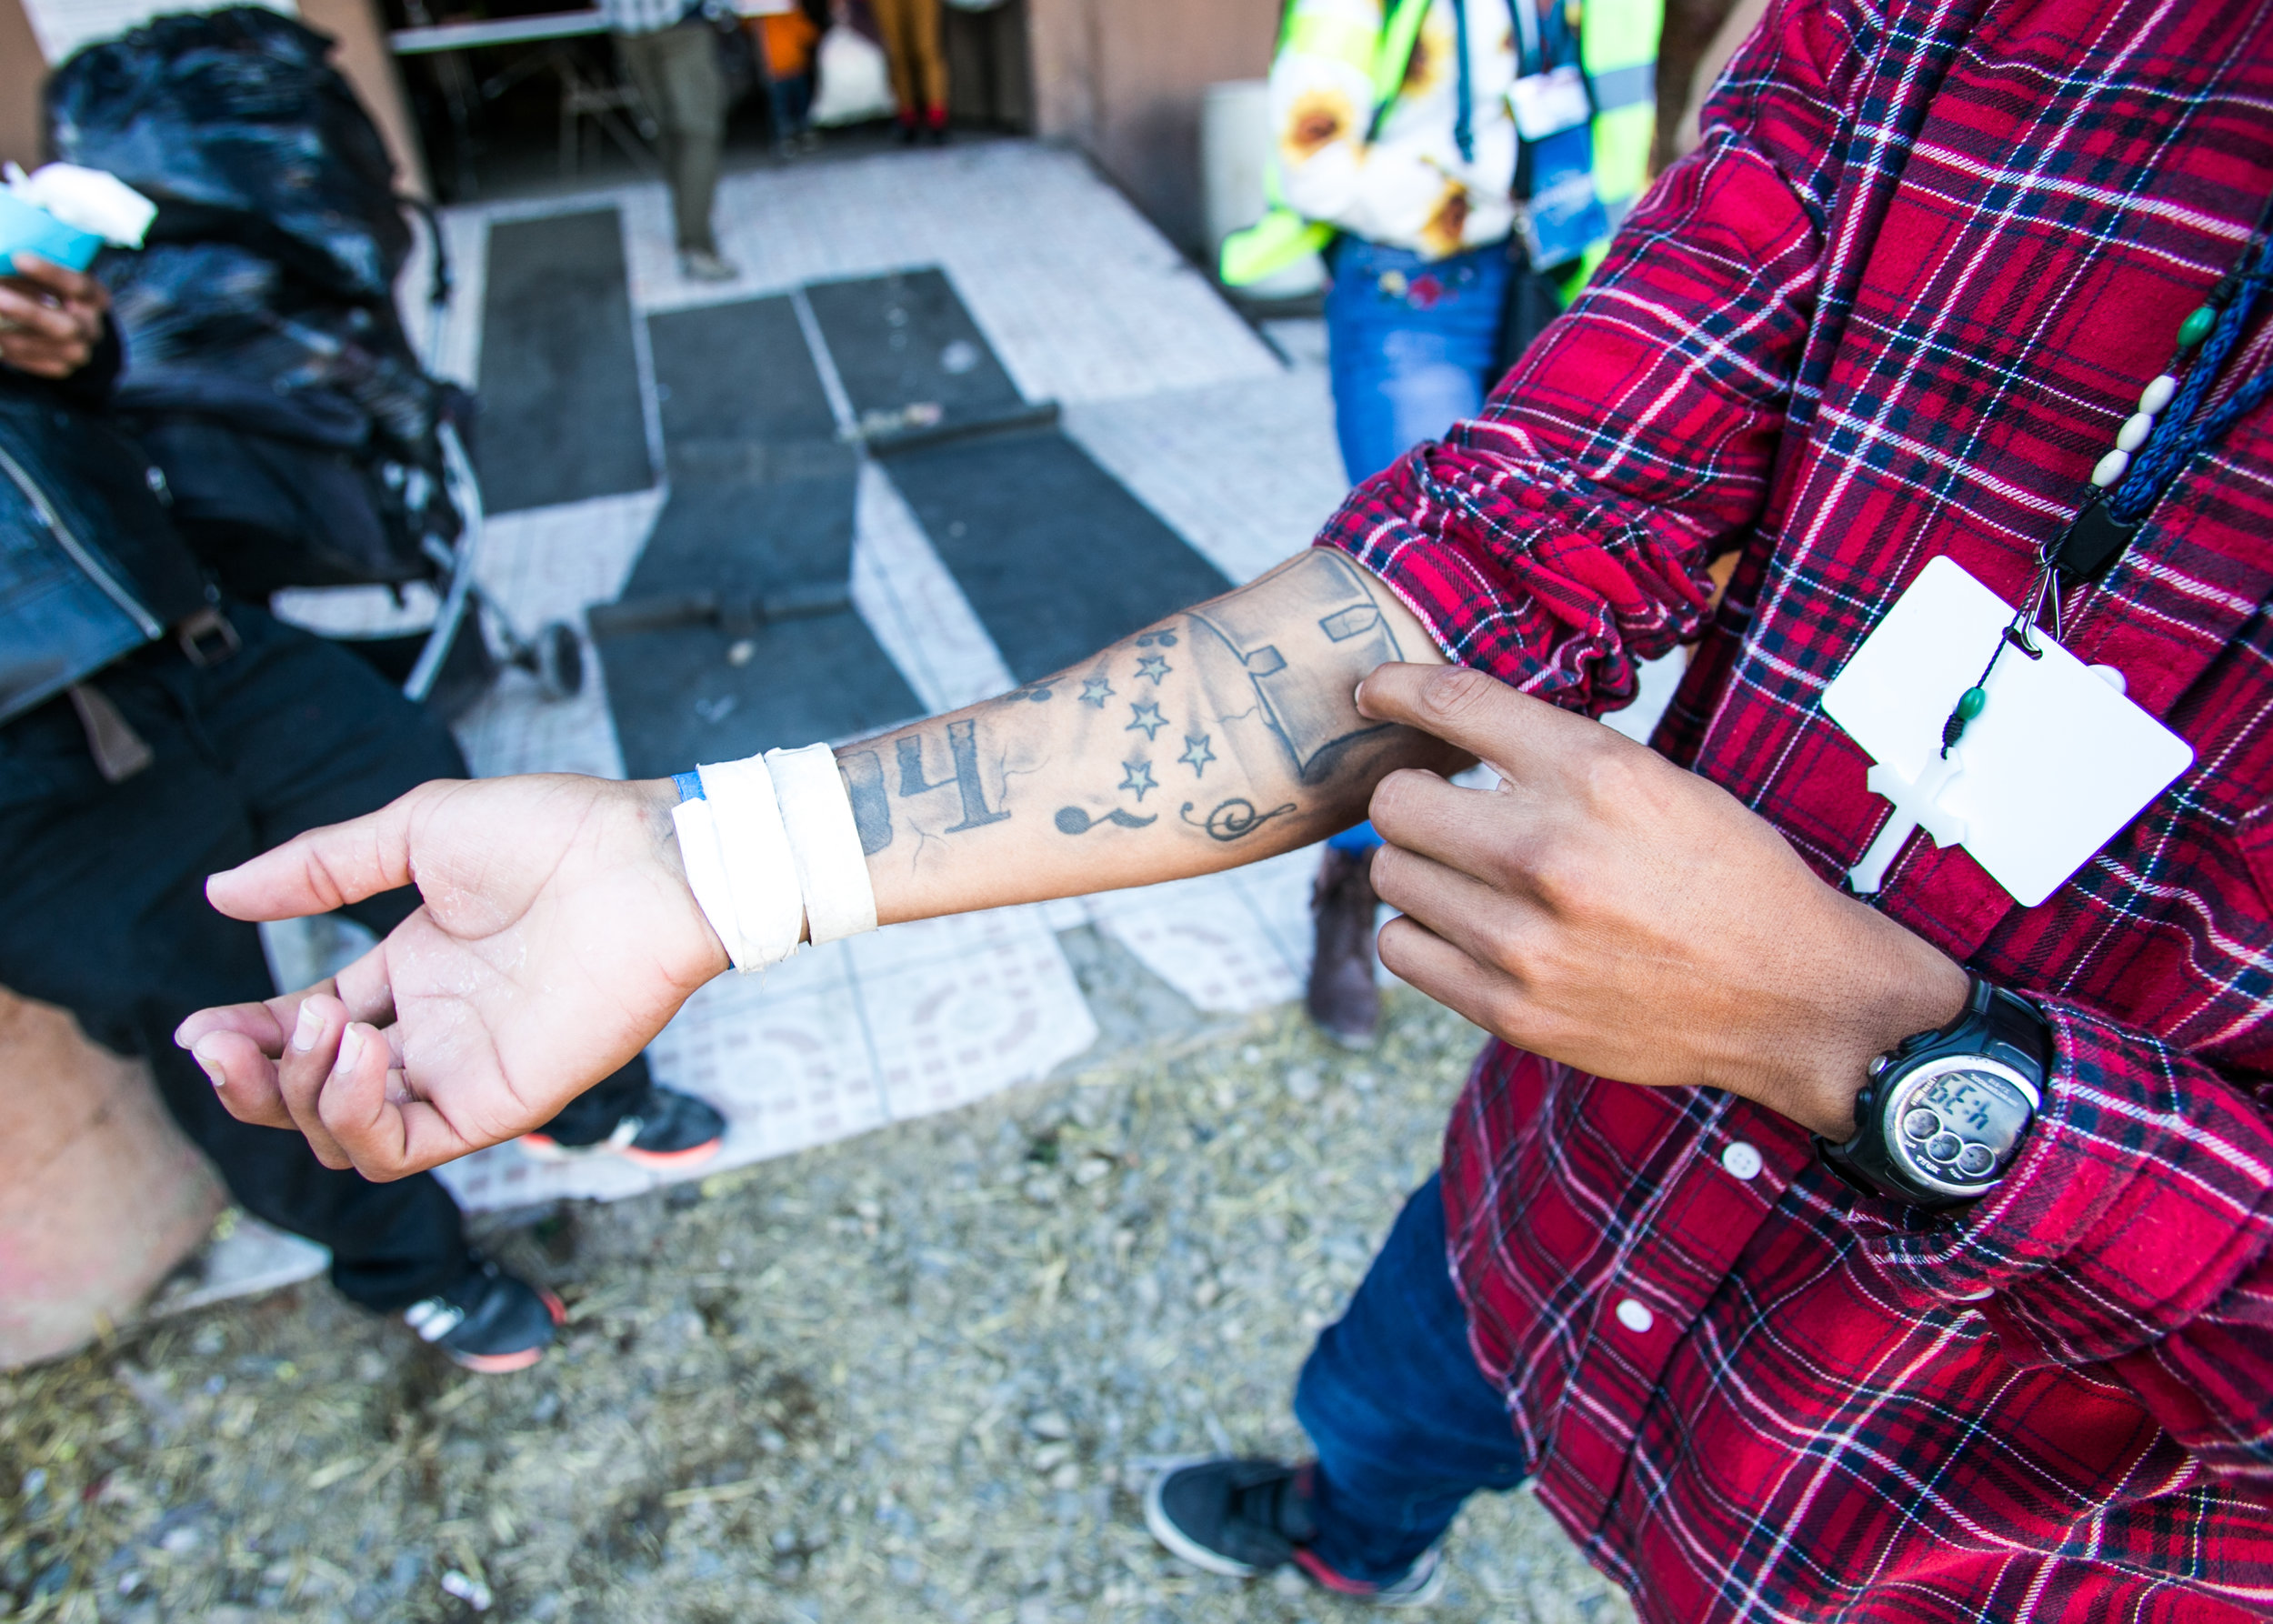 """Kevin Hernandez, 19, of Honduras, rolls up his sleeve to show off the tattoos he got several years prior. The numbers hidden by the camp passes on his wrist is the area code of his family home in Honduras. The """"H"""" directly above it (on his forearm) represents pride for his home country. Despite the gang turmoil tearing his neighborhood apart - he says he """"misses Honduras"""", and """"wishes he could return to be with his mother""""."""